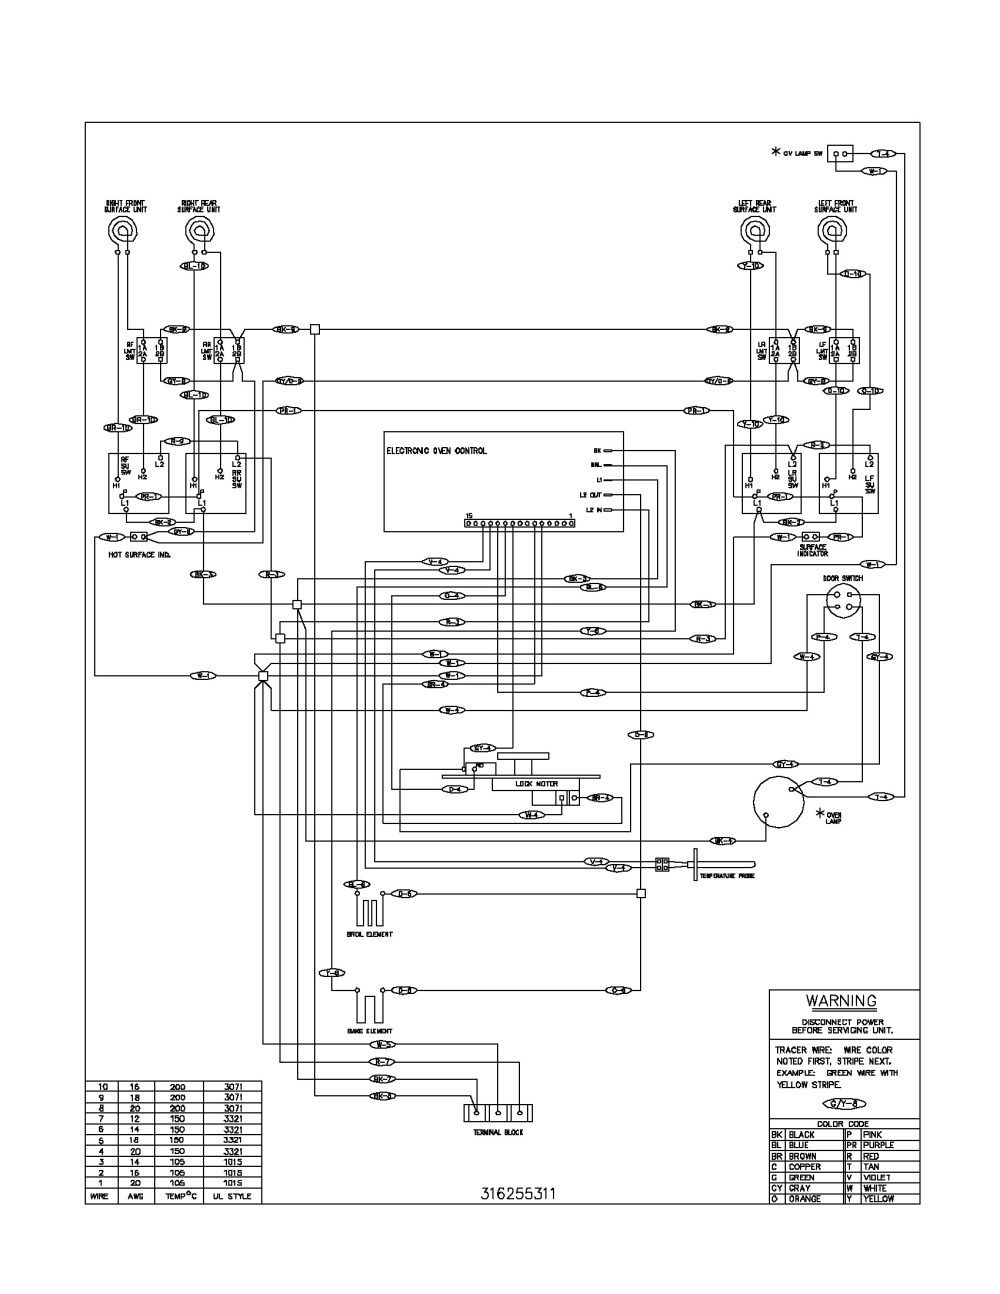 medium resolution of  gas stove igniter wiring diagram wiring diagram rh 04 ansolsolder co electric furnace wiring gas stove